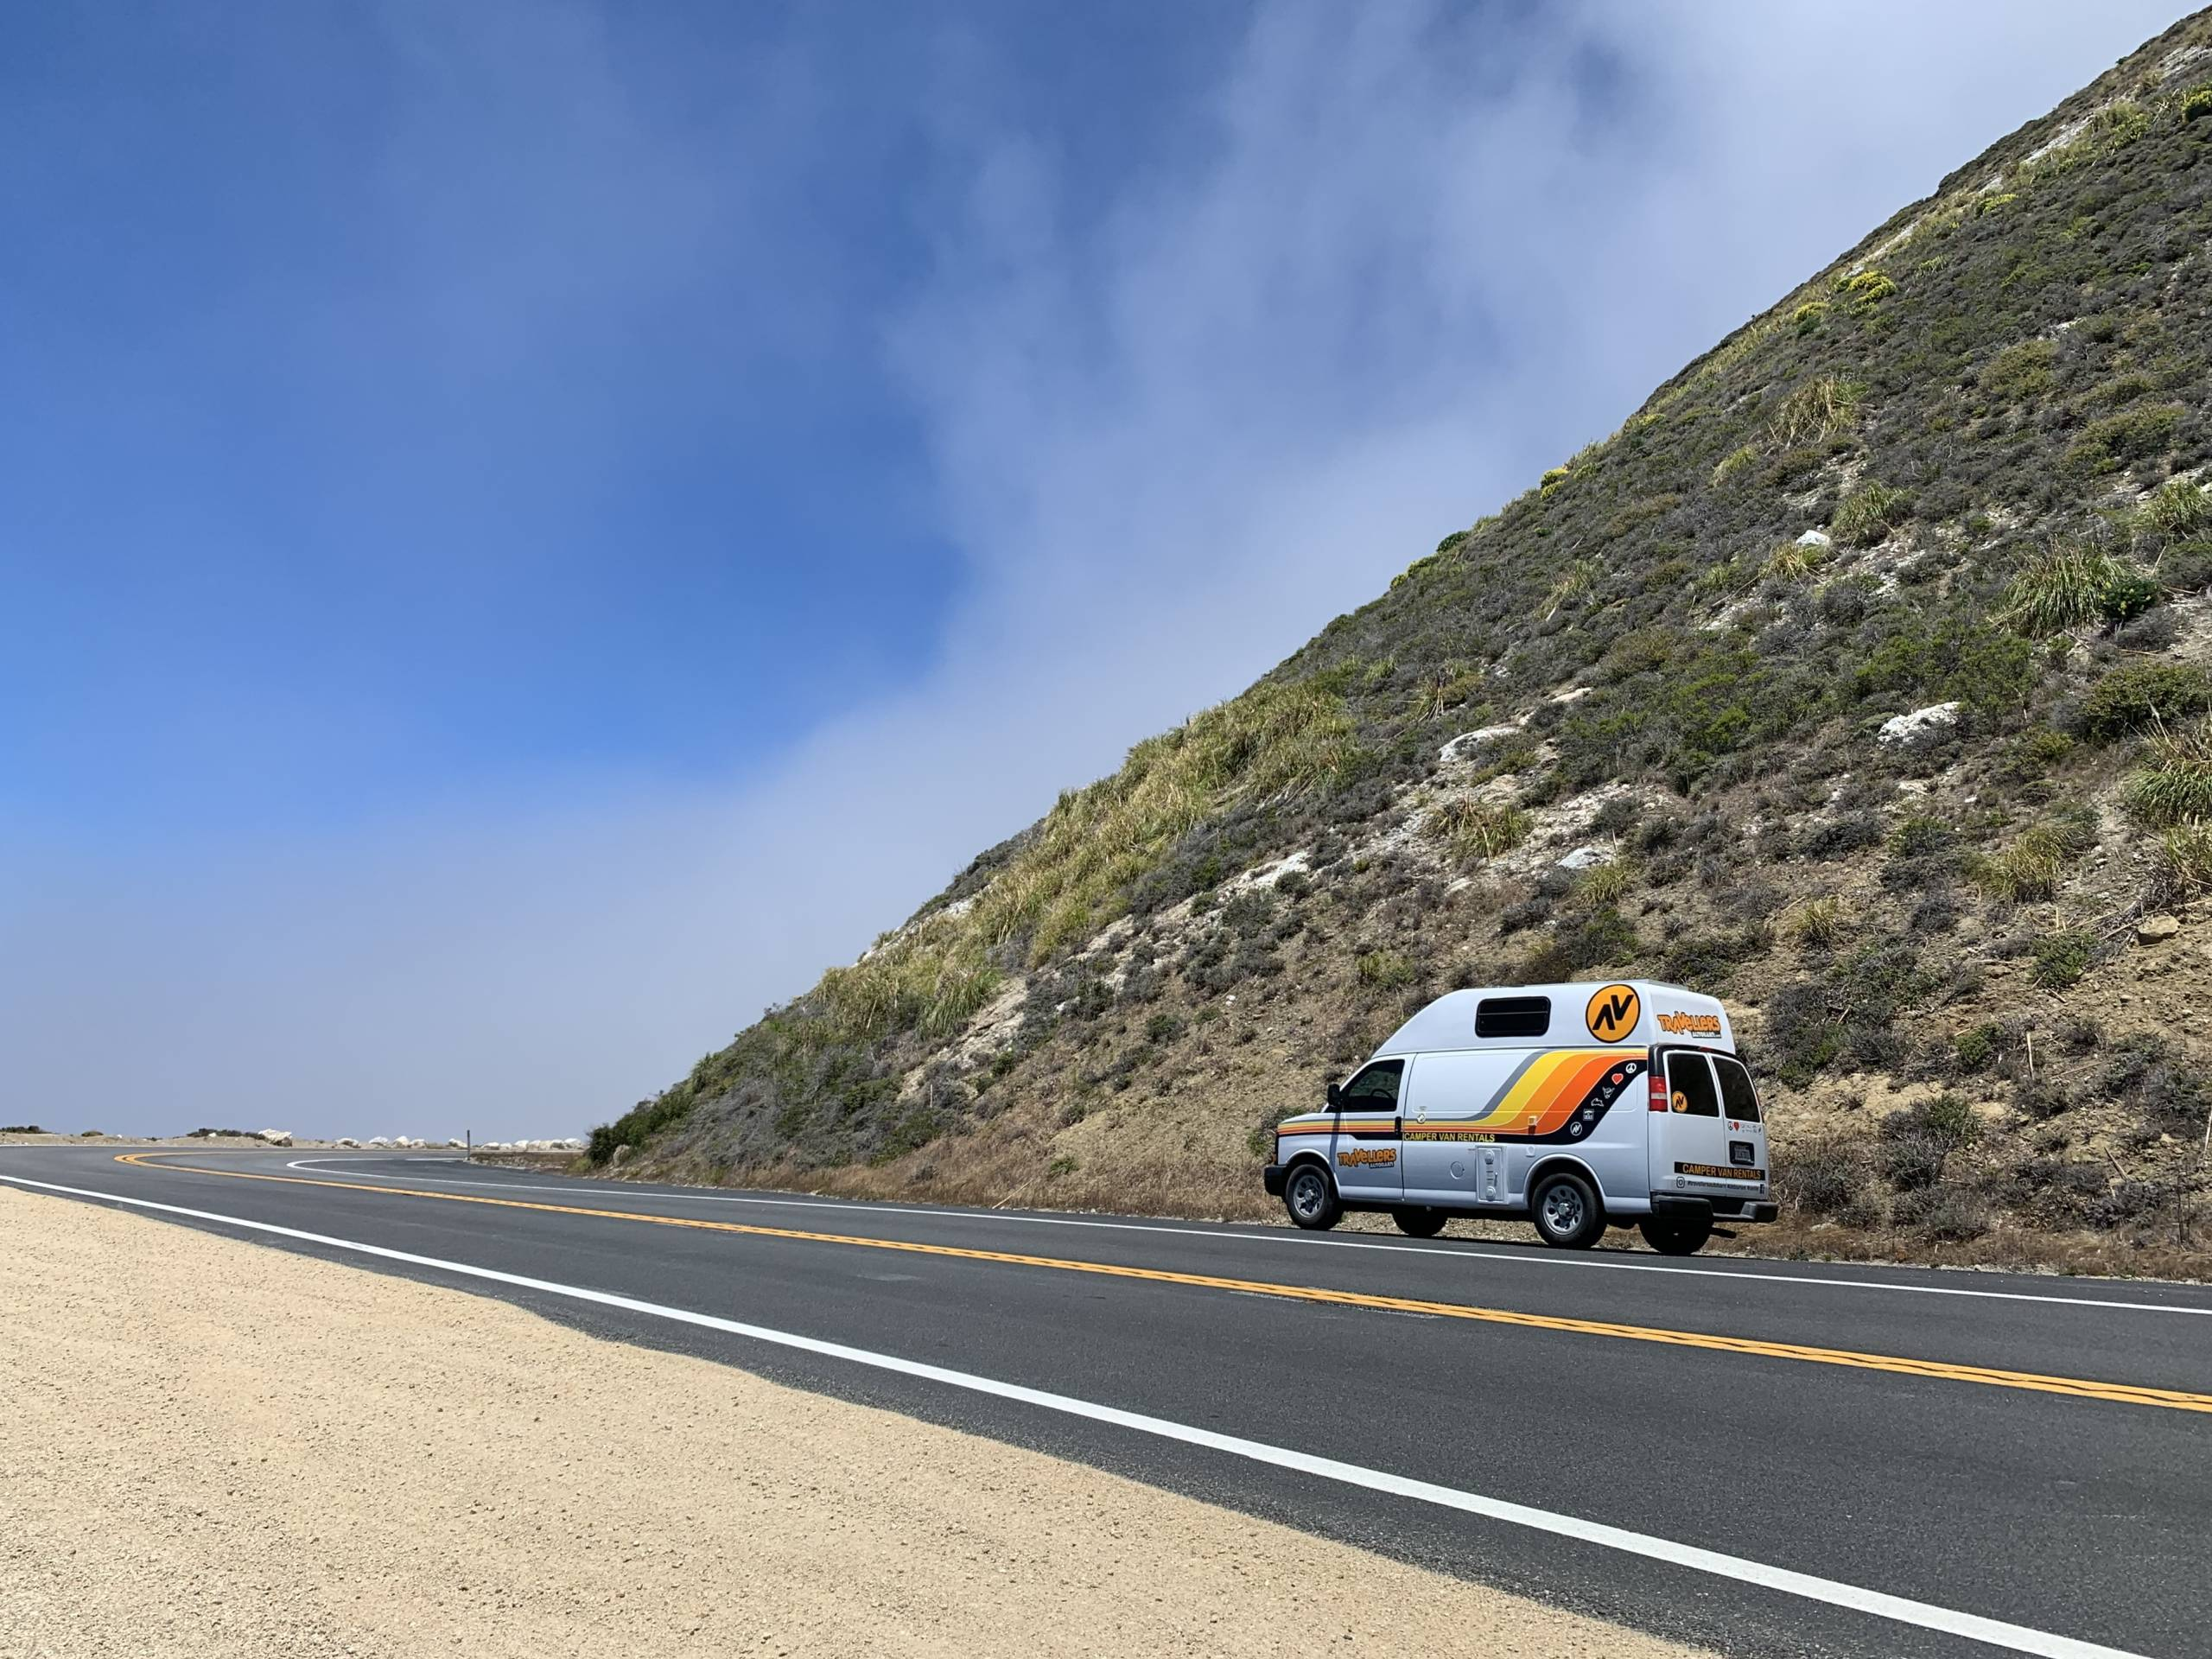 the Kuga Campervan parked along California's pacific coast highway